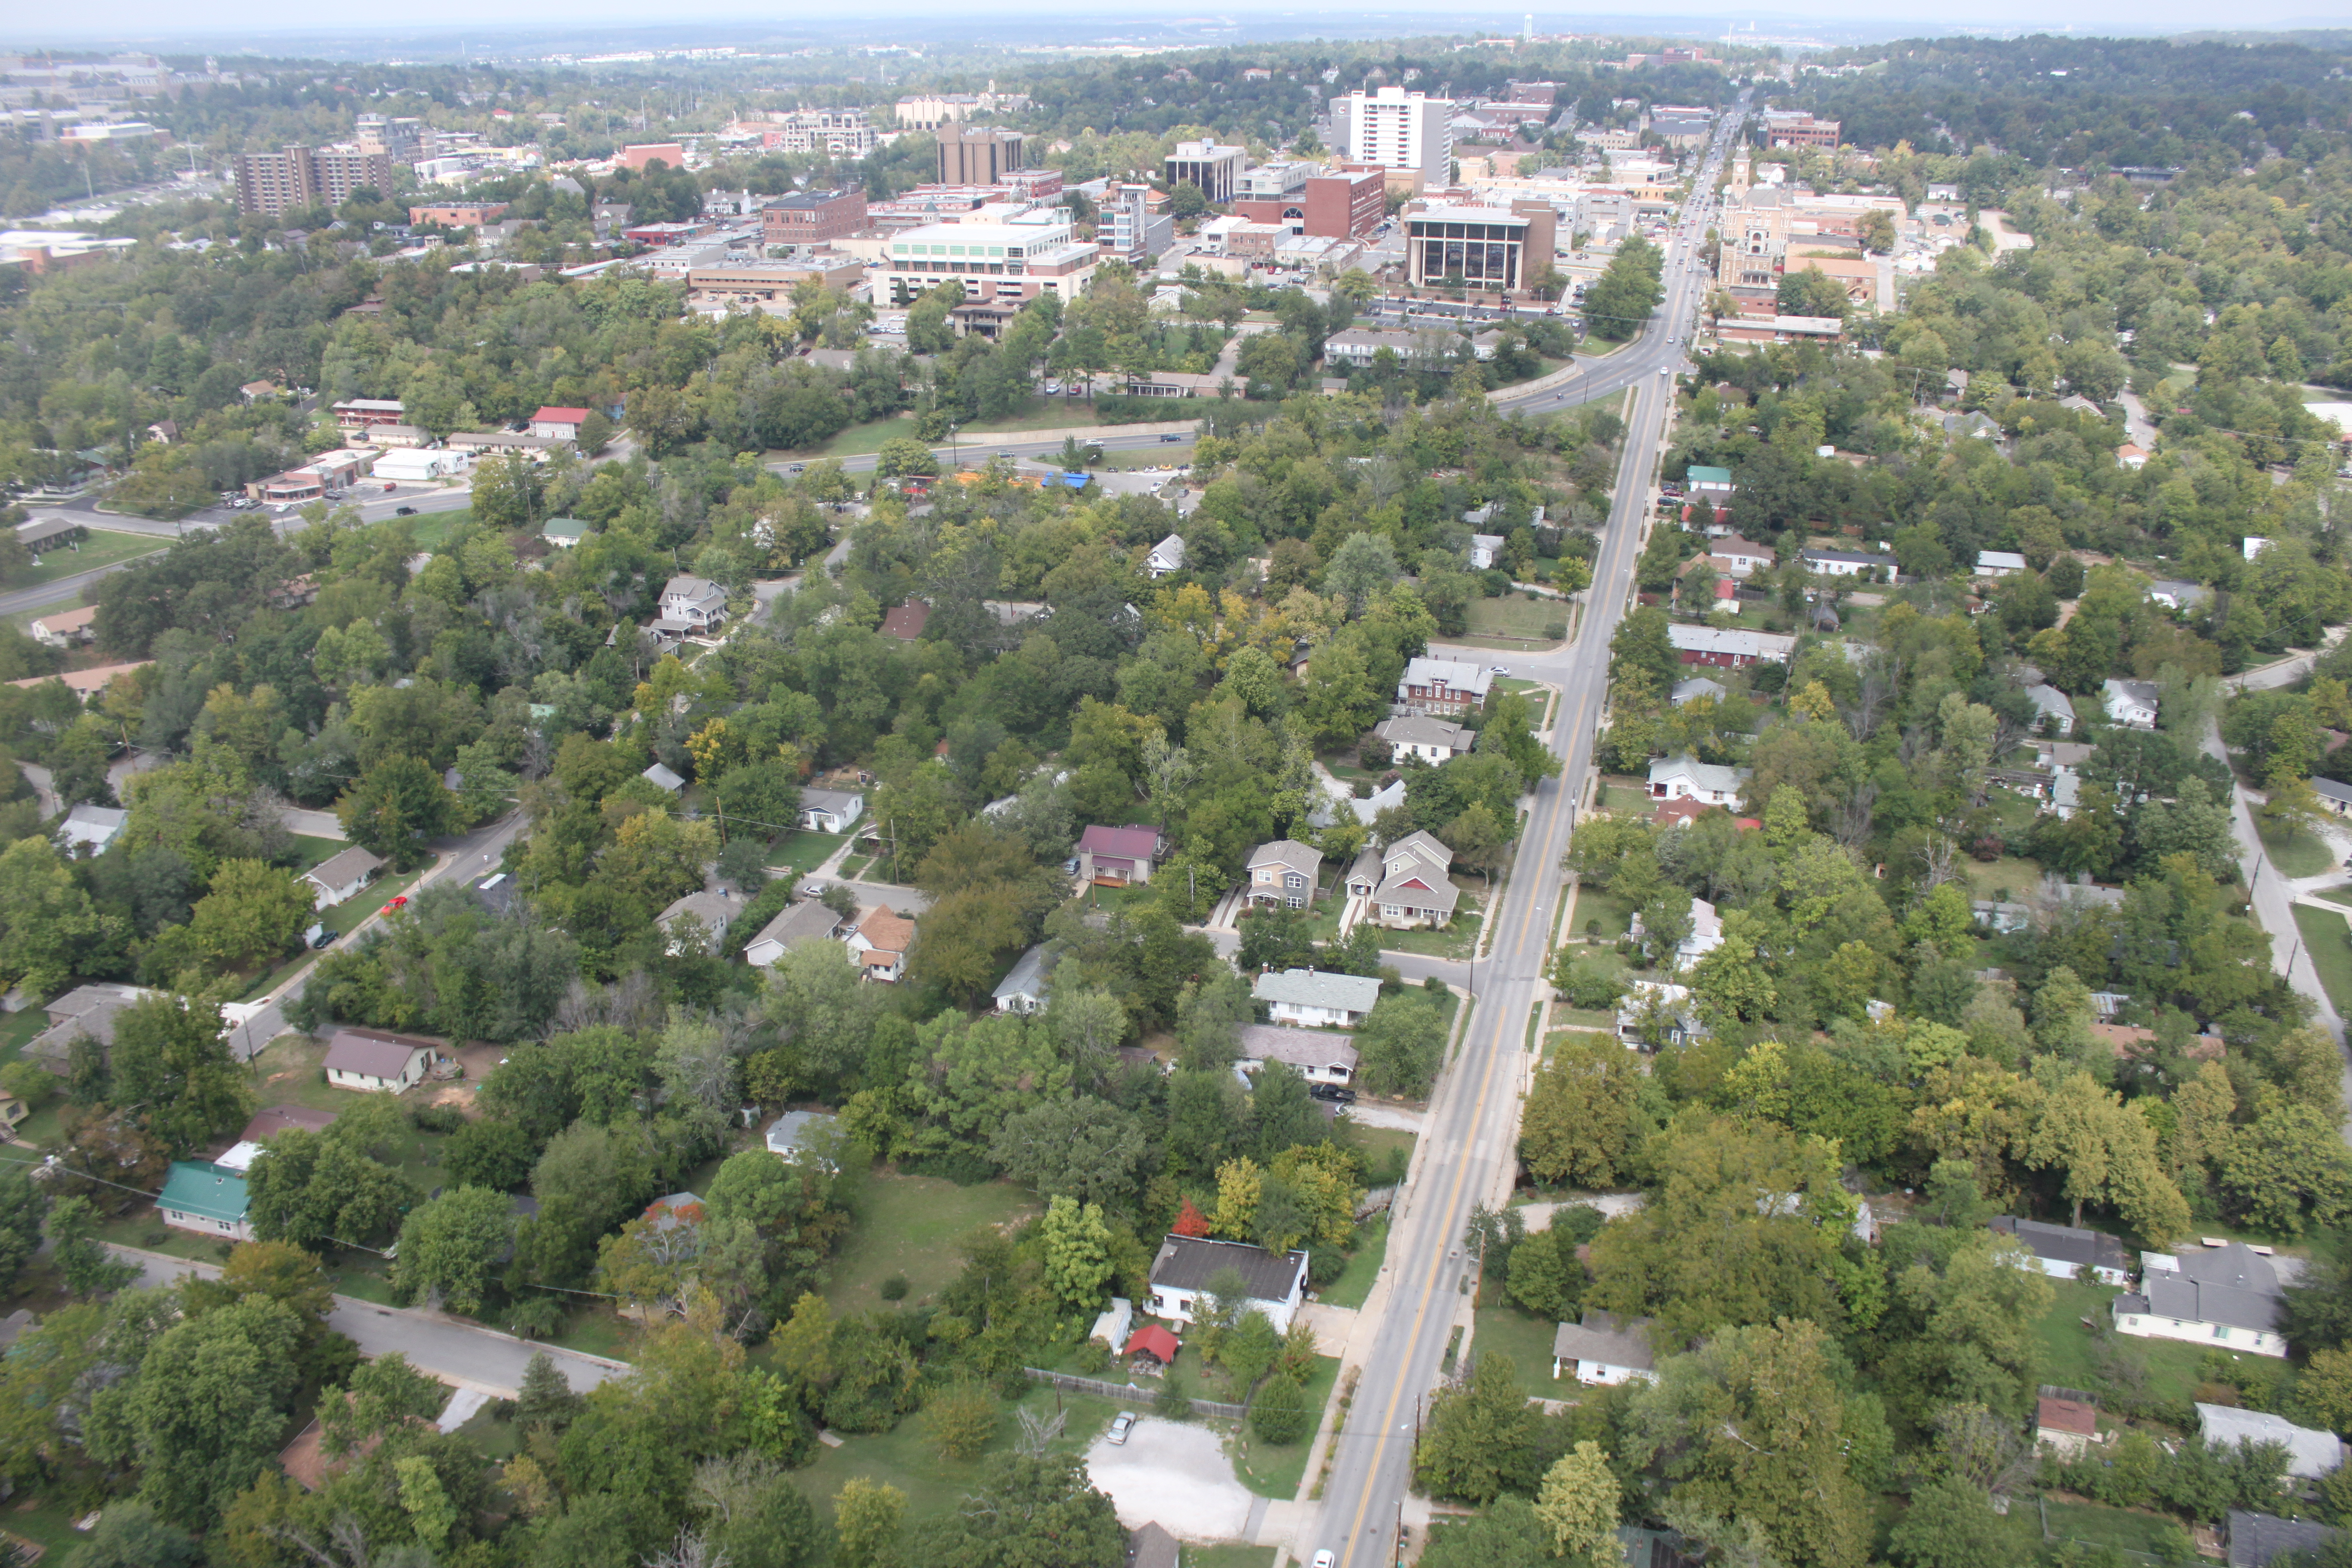 Sky view of Downtown Fayetteville